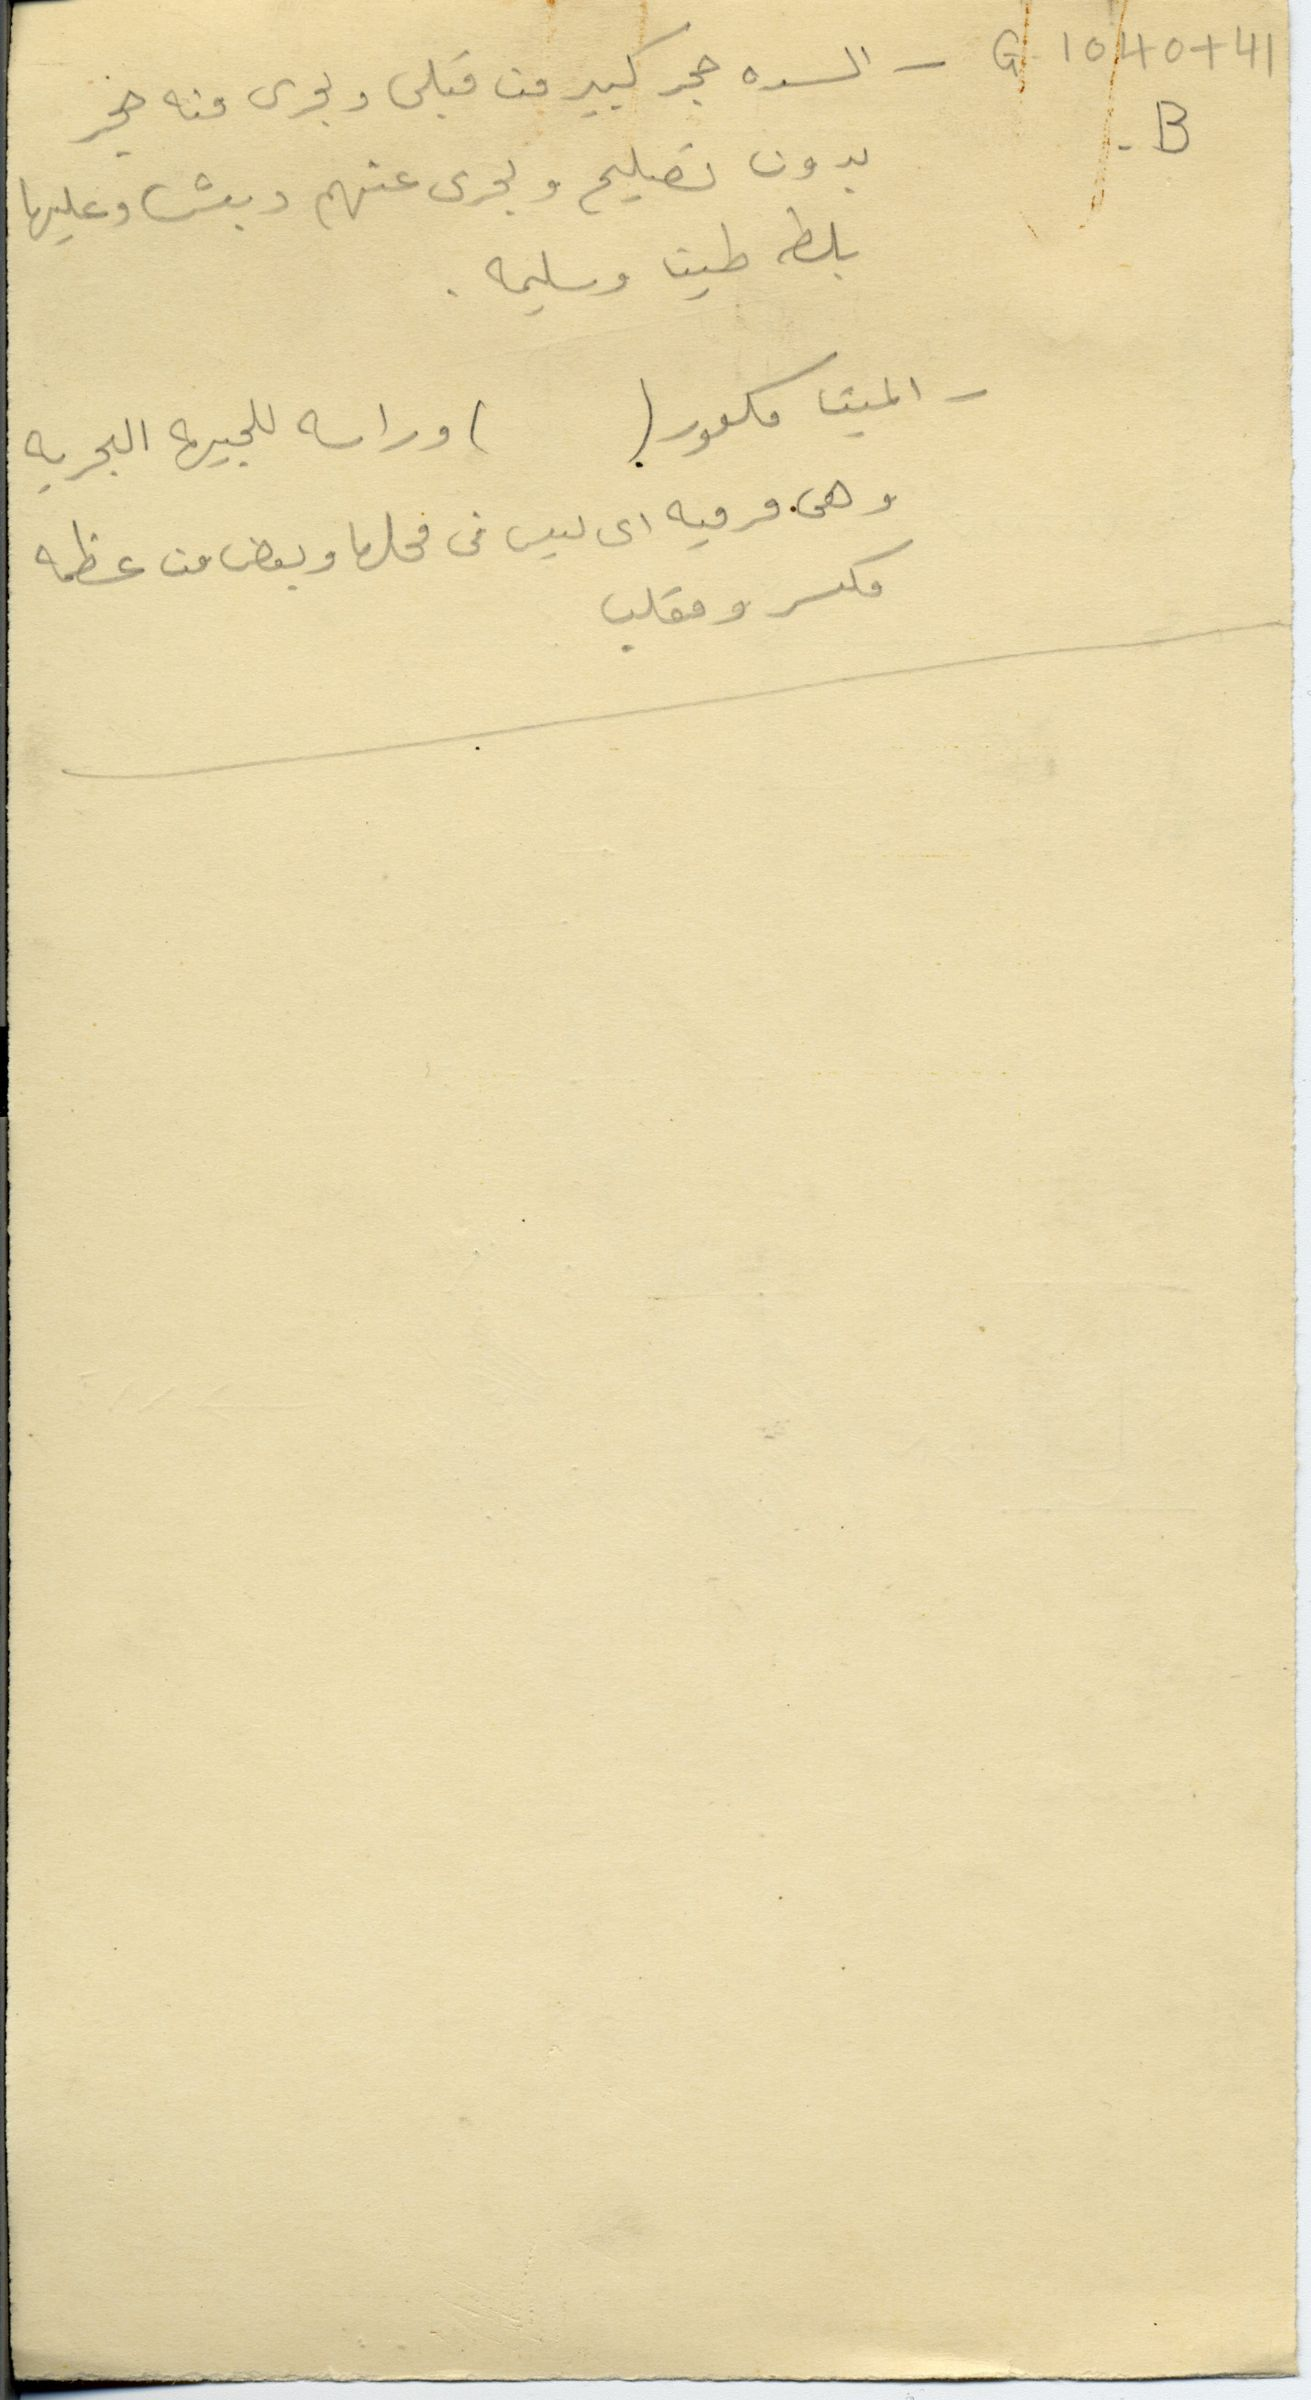 Notes: G 1040+1041, Shaft B, notes (in Arabic)